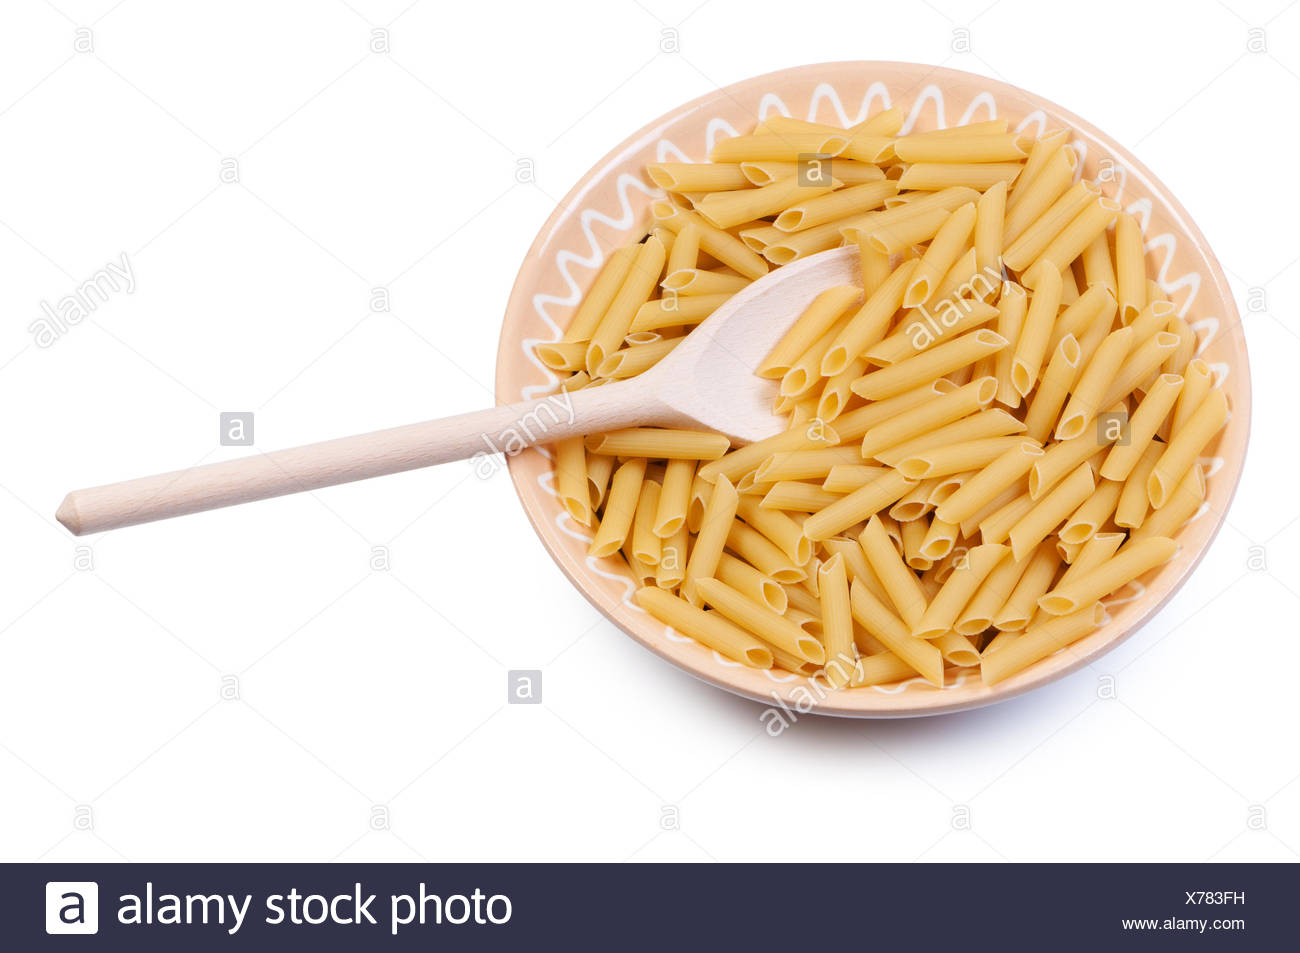 Plate with raw pasta and wooden spoon on white background. - Stock Image